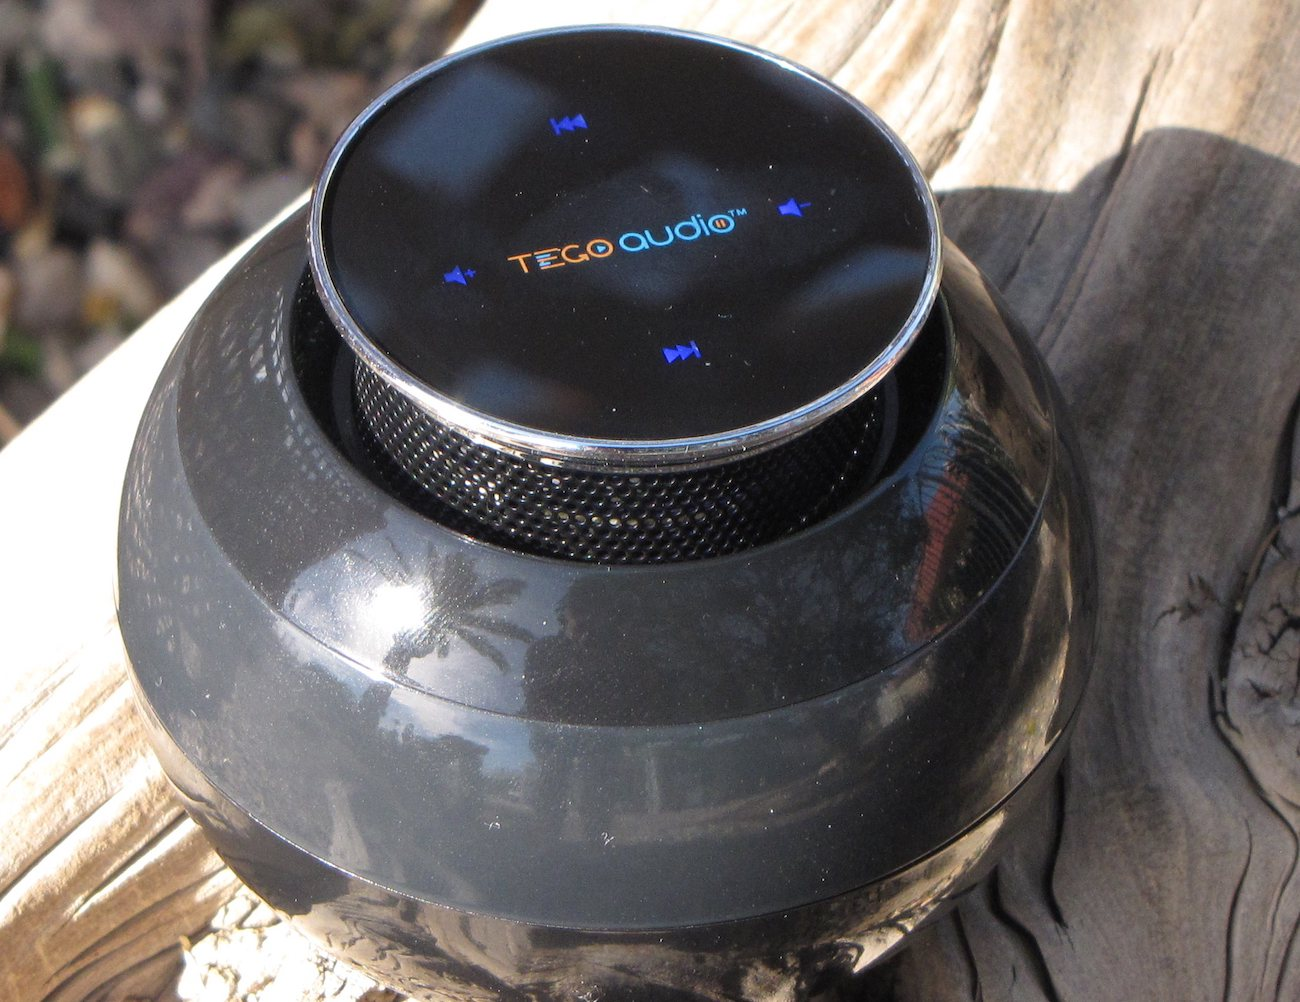 cera-wireless-portable-speaker-by-tego-audio-03